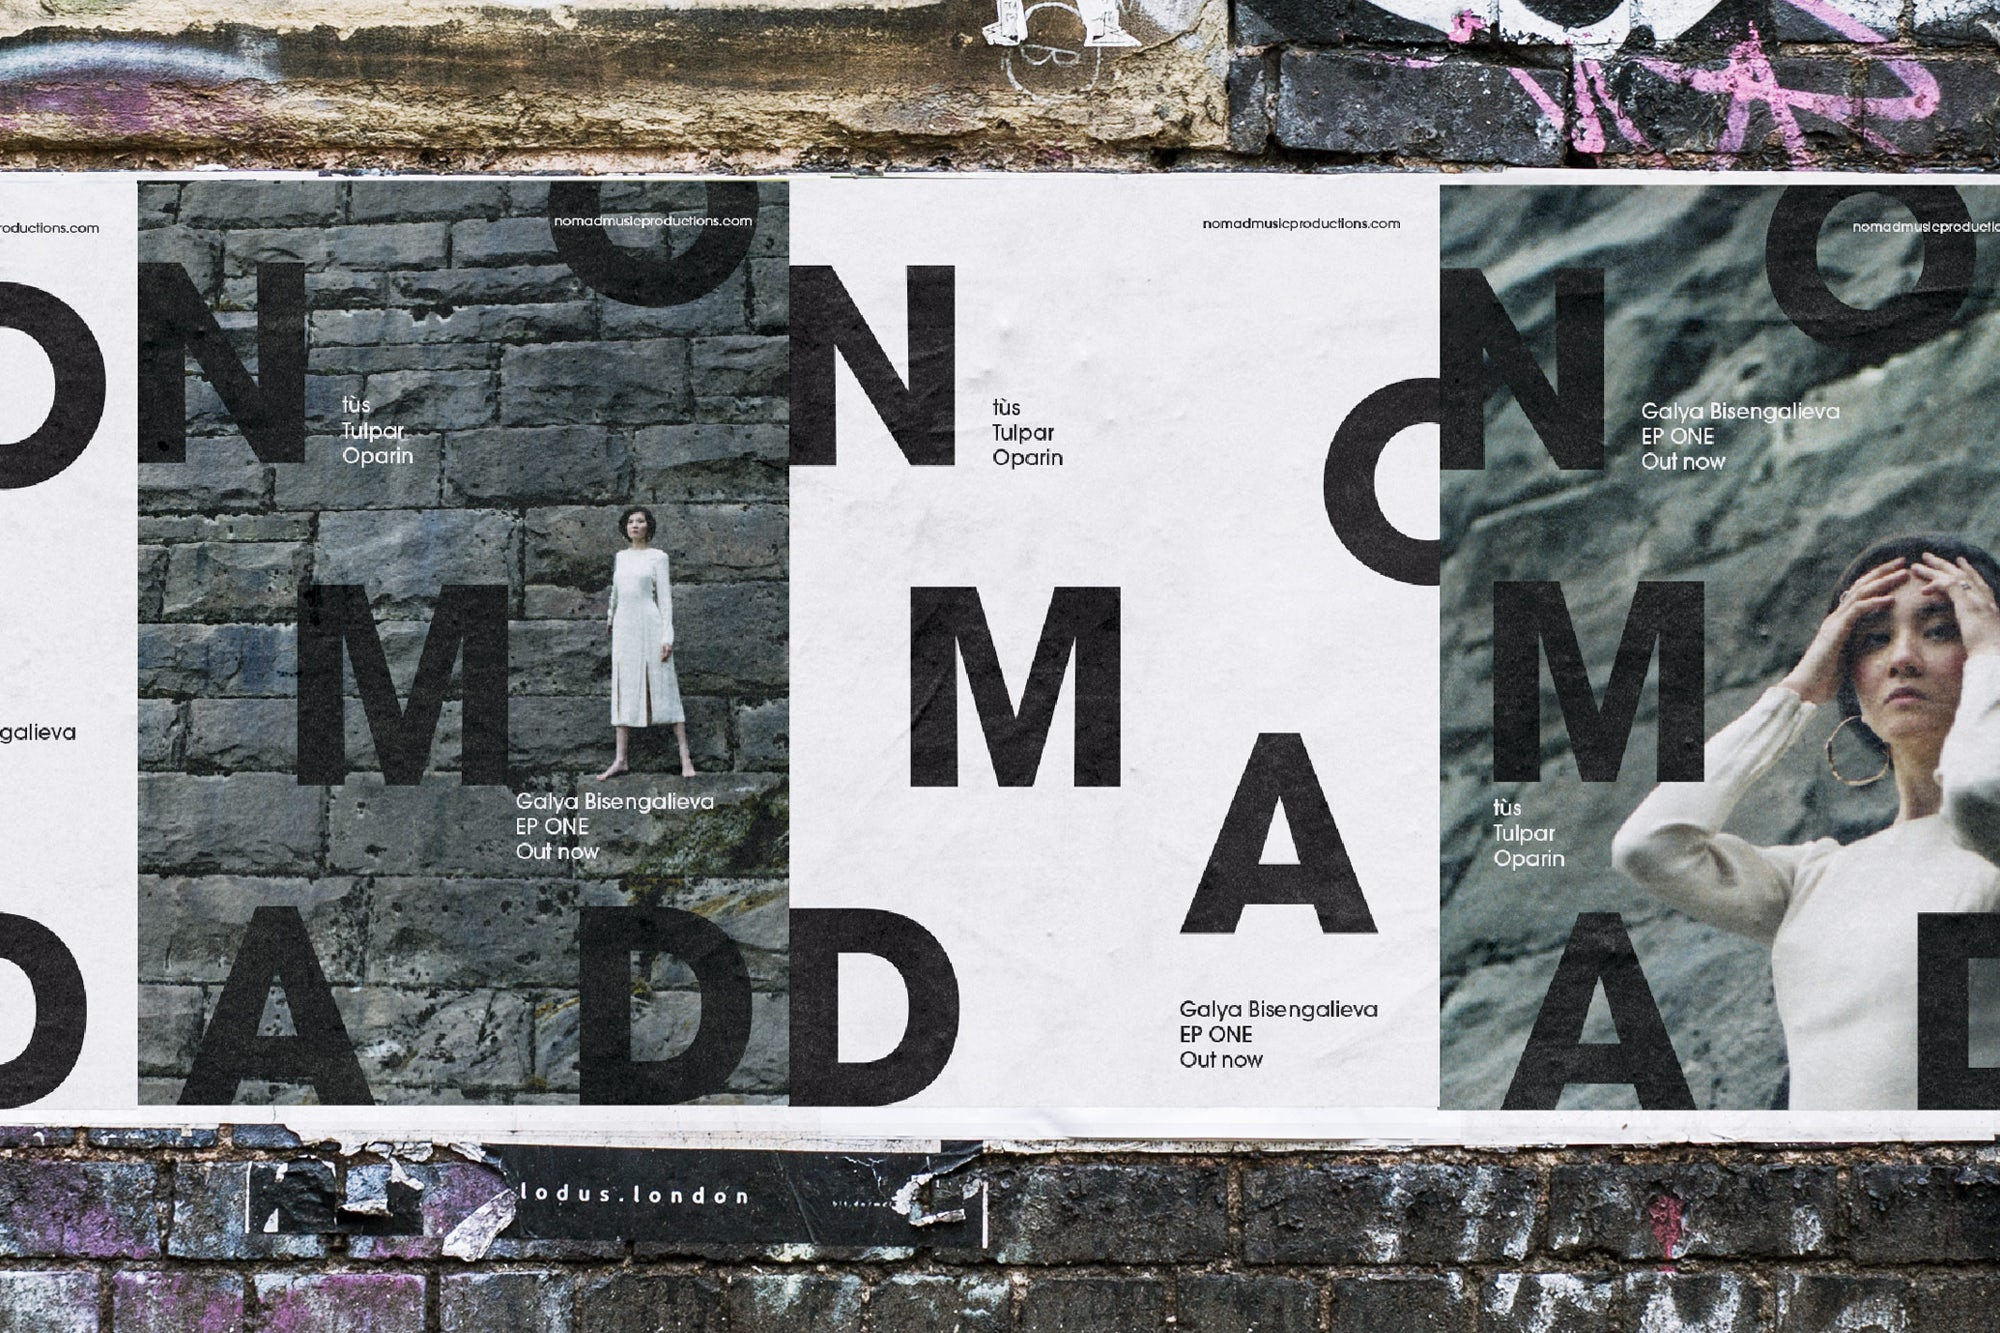 Nomad posters